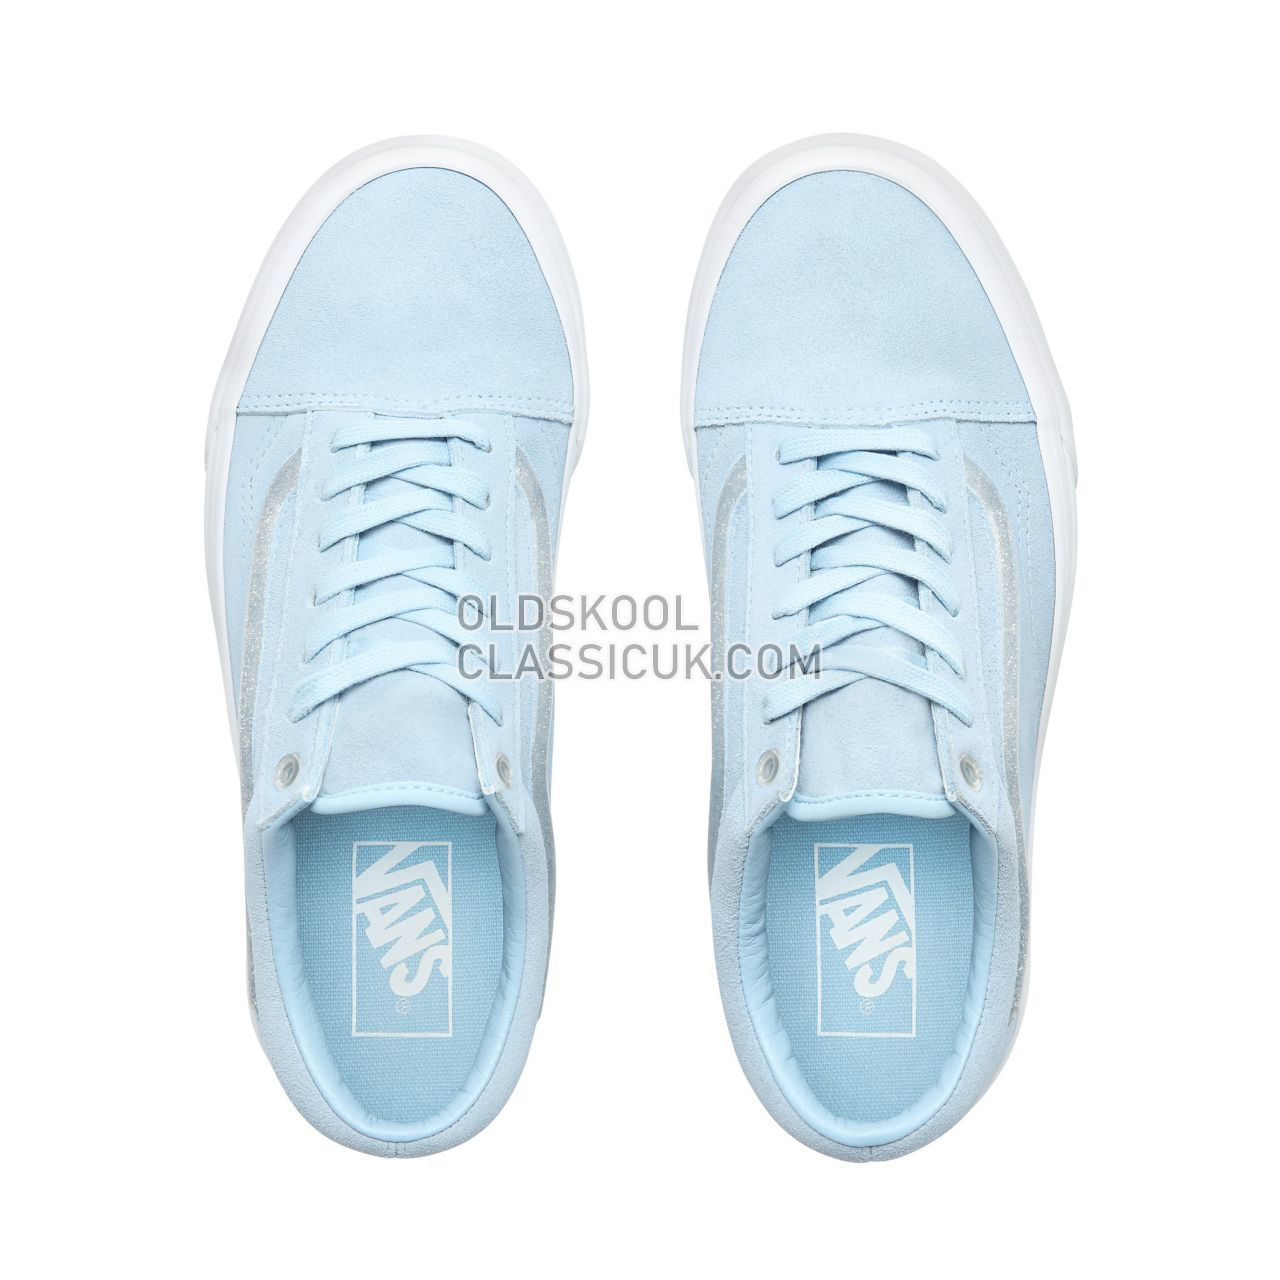 Vans Jelly Sidestripe Old Skool Sneakers Womens (Jelly Sidestripe) Cool Blue/True White VN0A38G1VRA Shoes